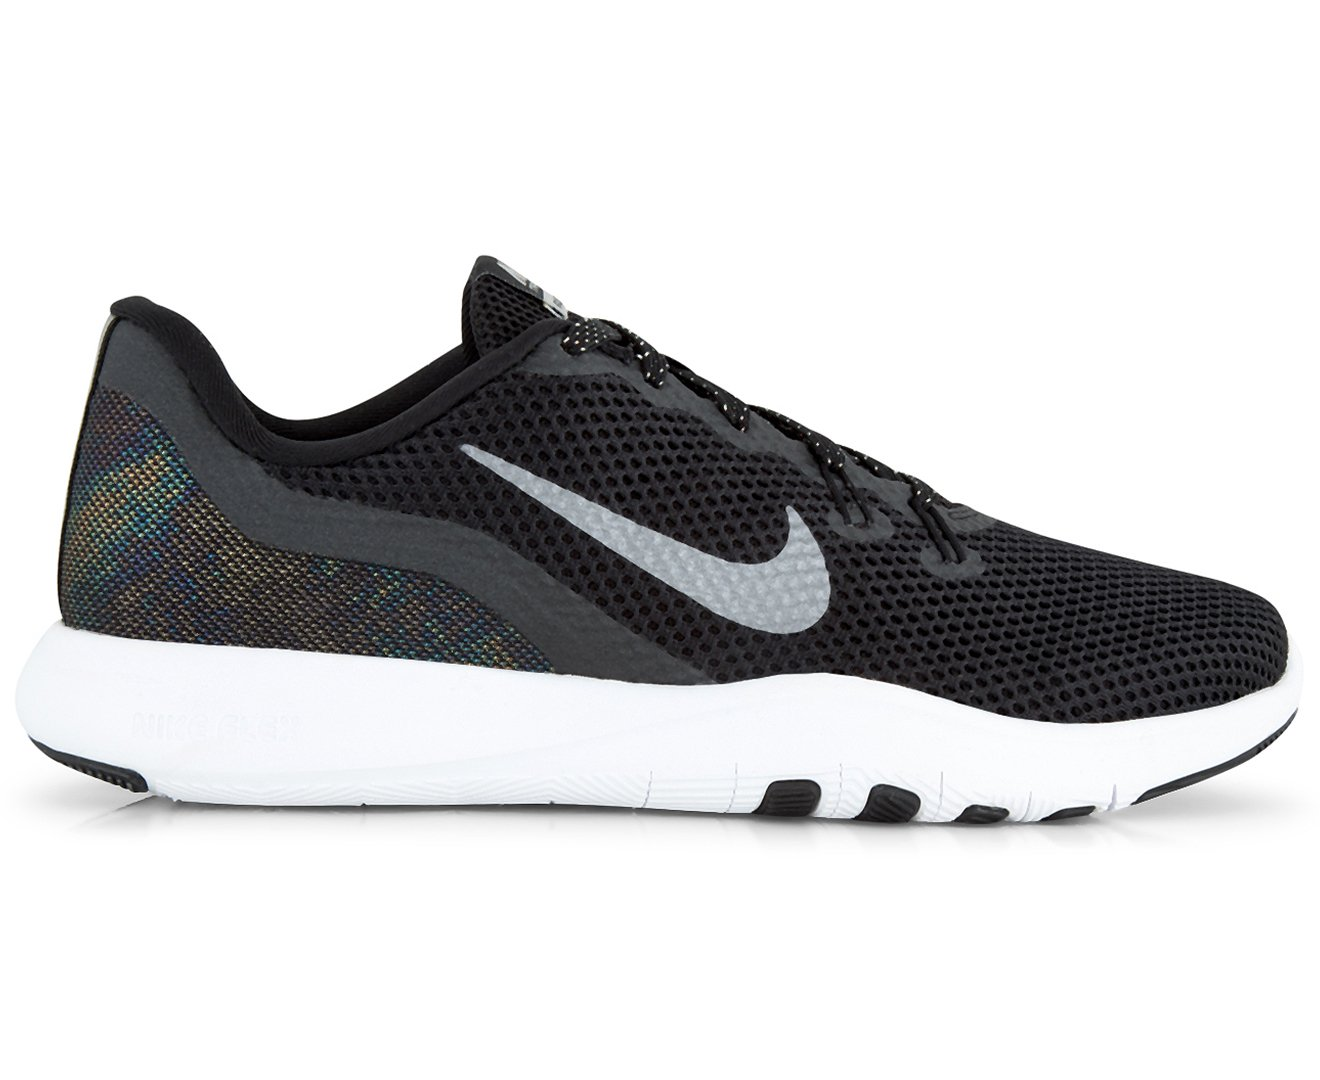 1ce663d7c4d4 Nike Women s Flex Trainer 7 MTLC Shoe Black Metallic Dark Grey   Amazon.com.au  Fashion